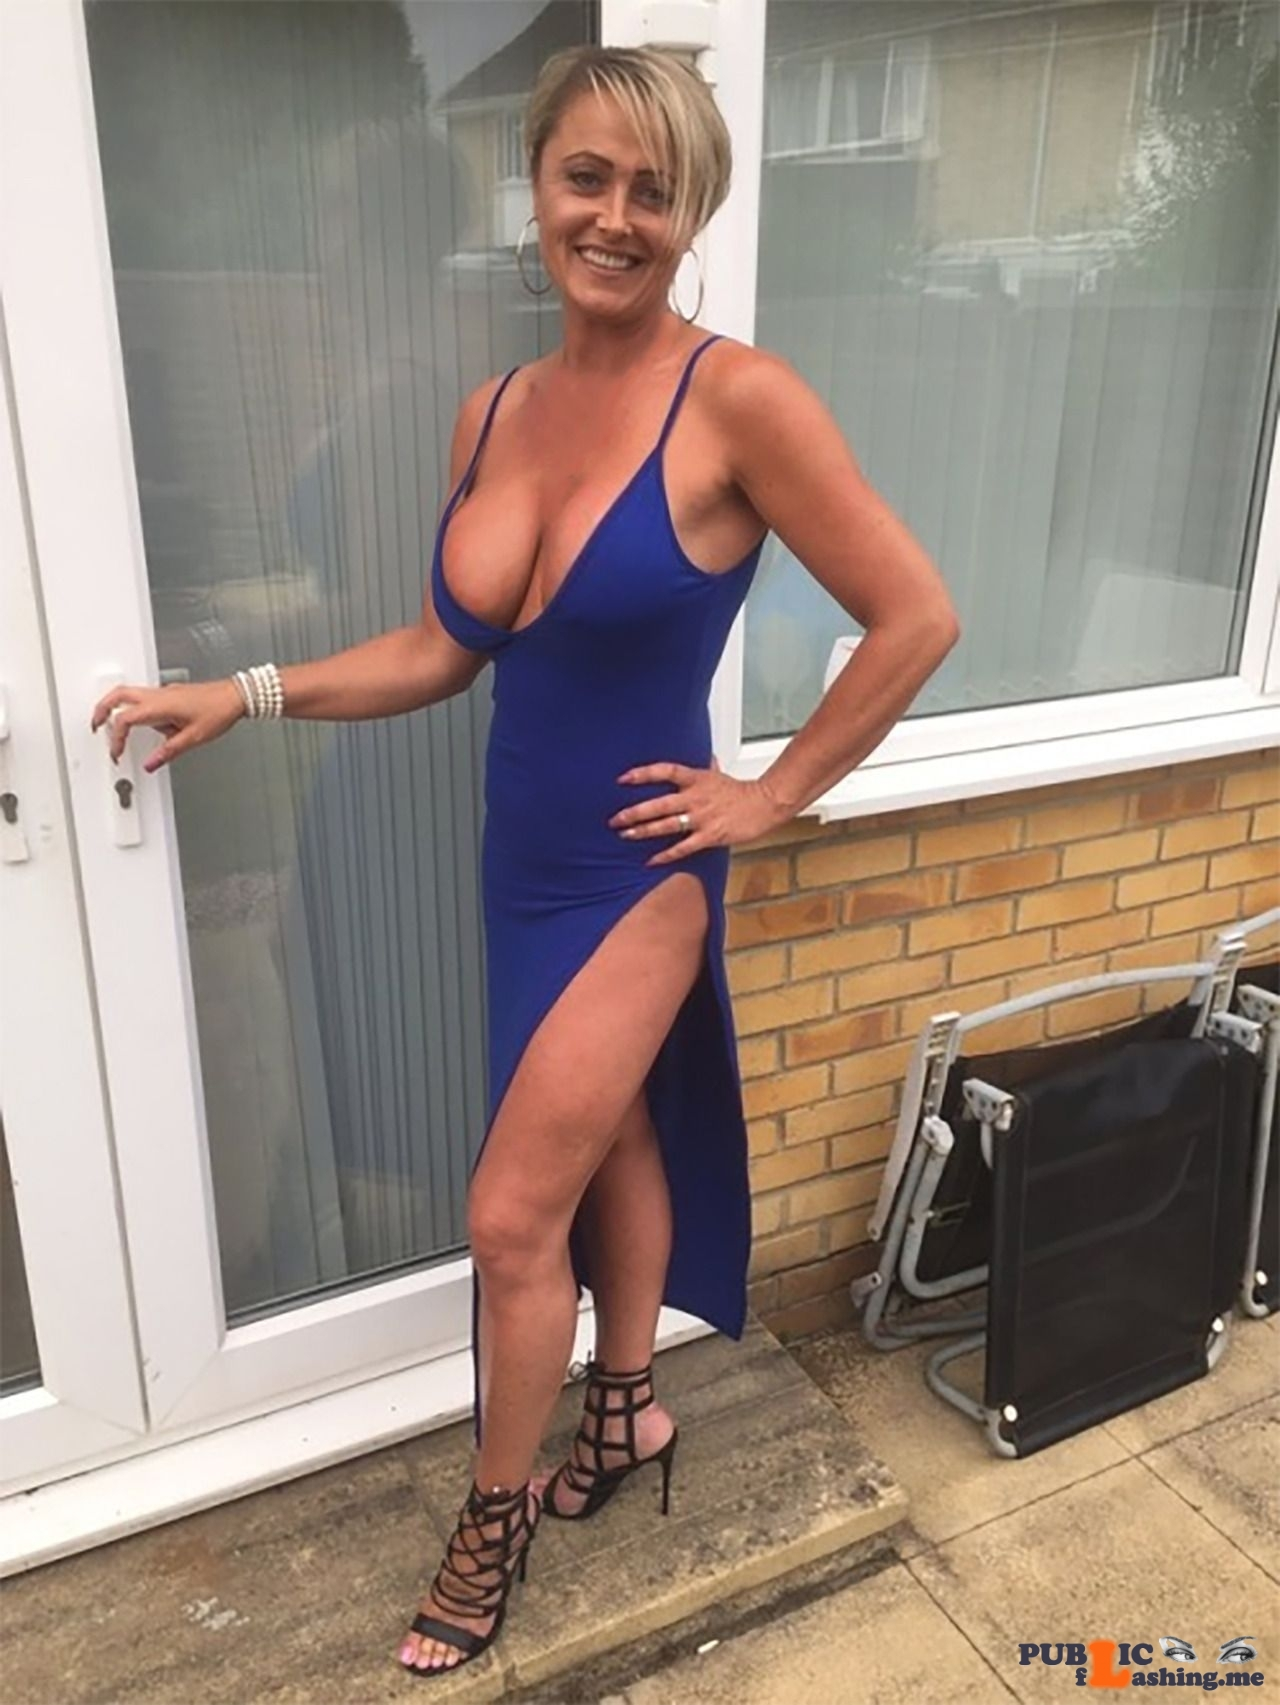 Braless Chav mom in long blue evening dress